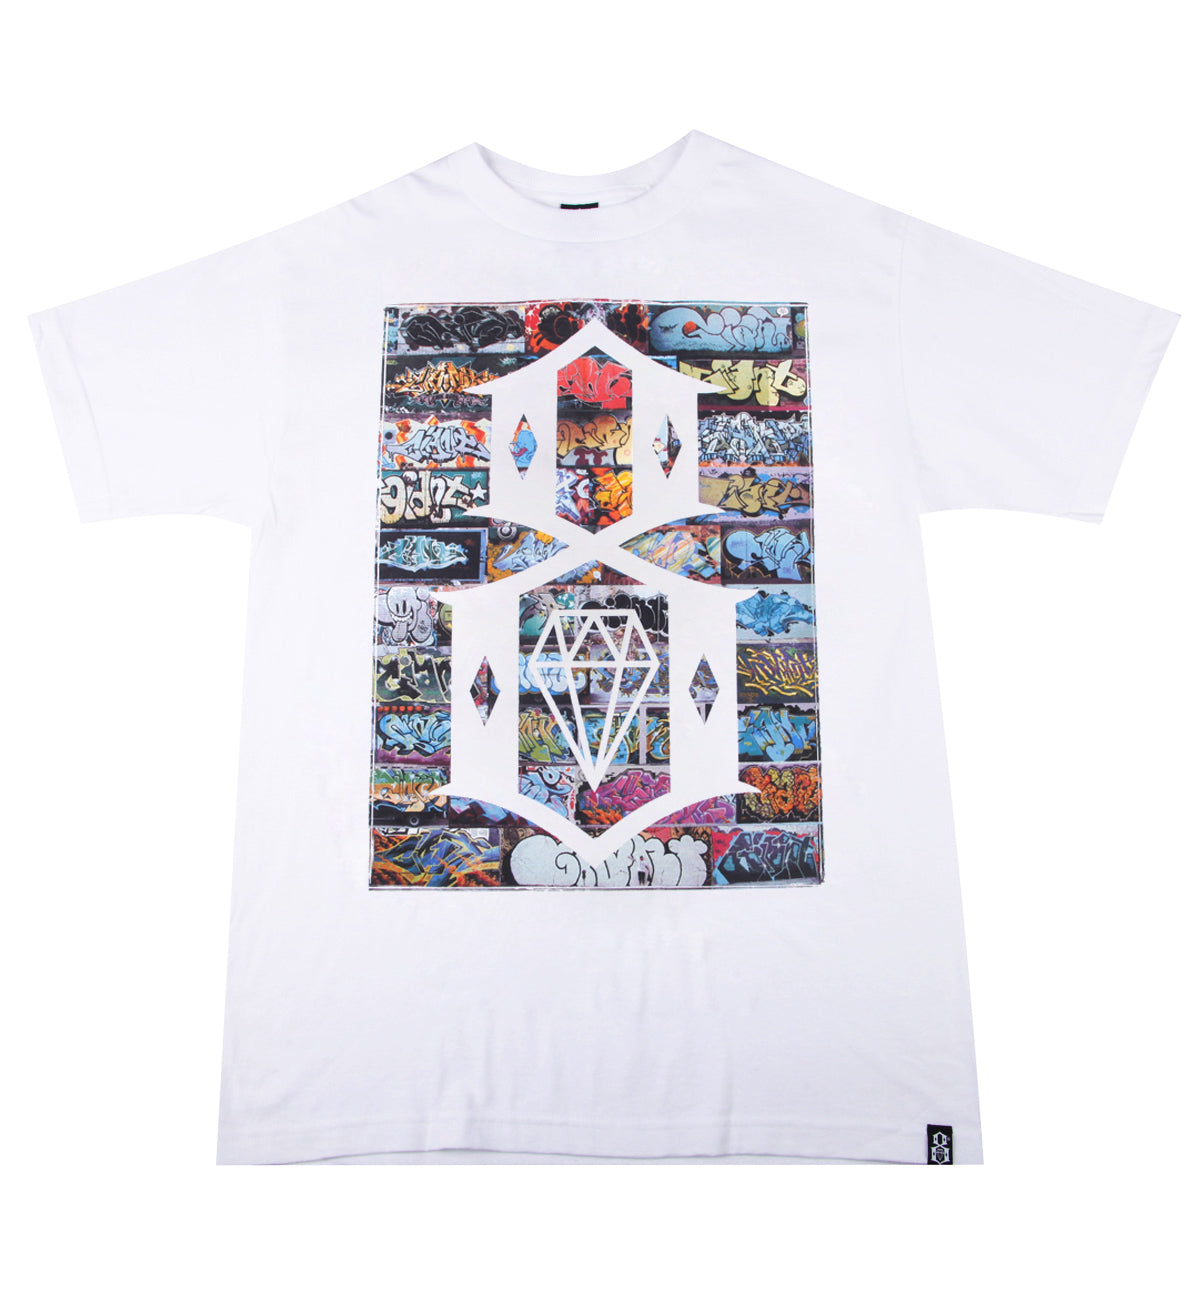 Rebel8 Legend white T shirt